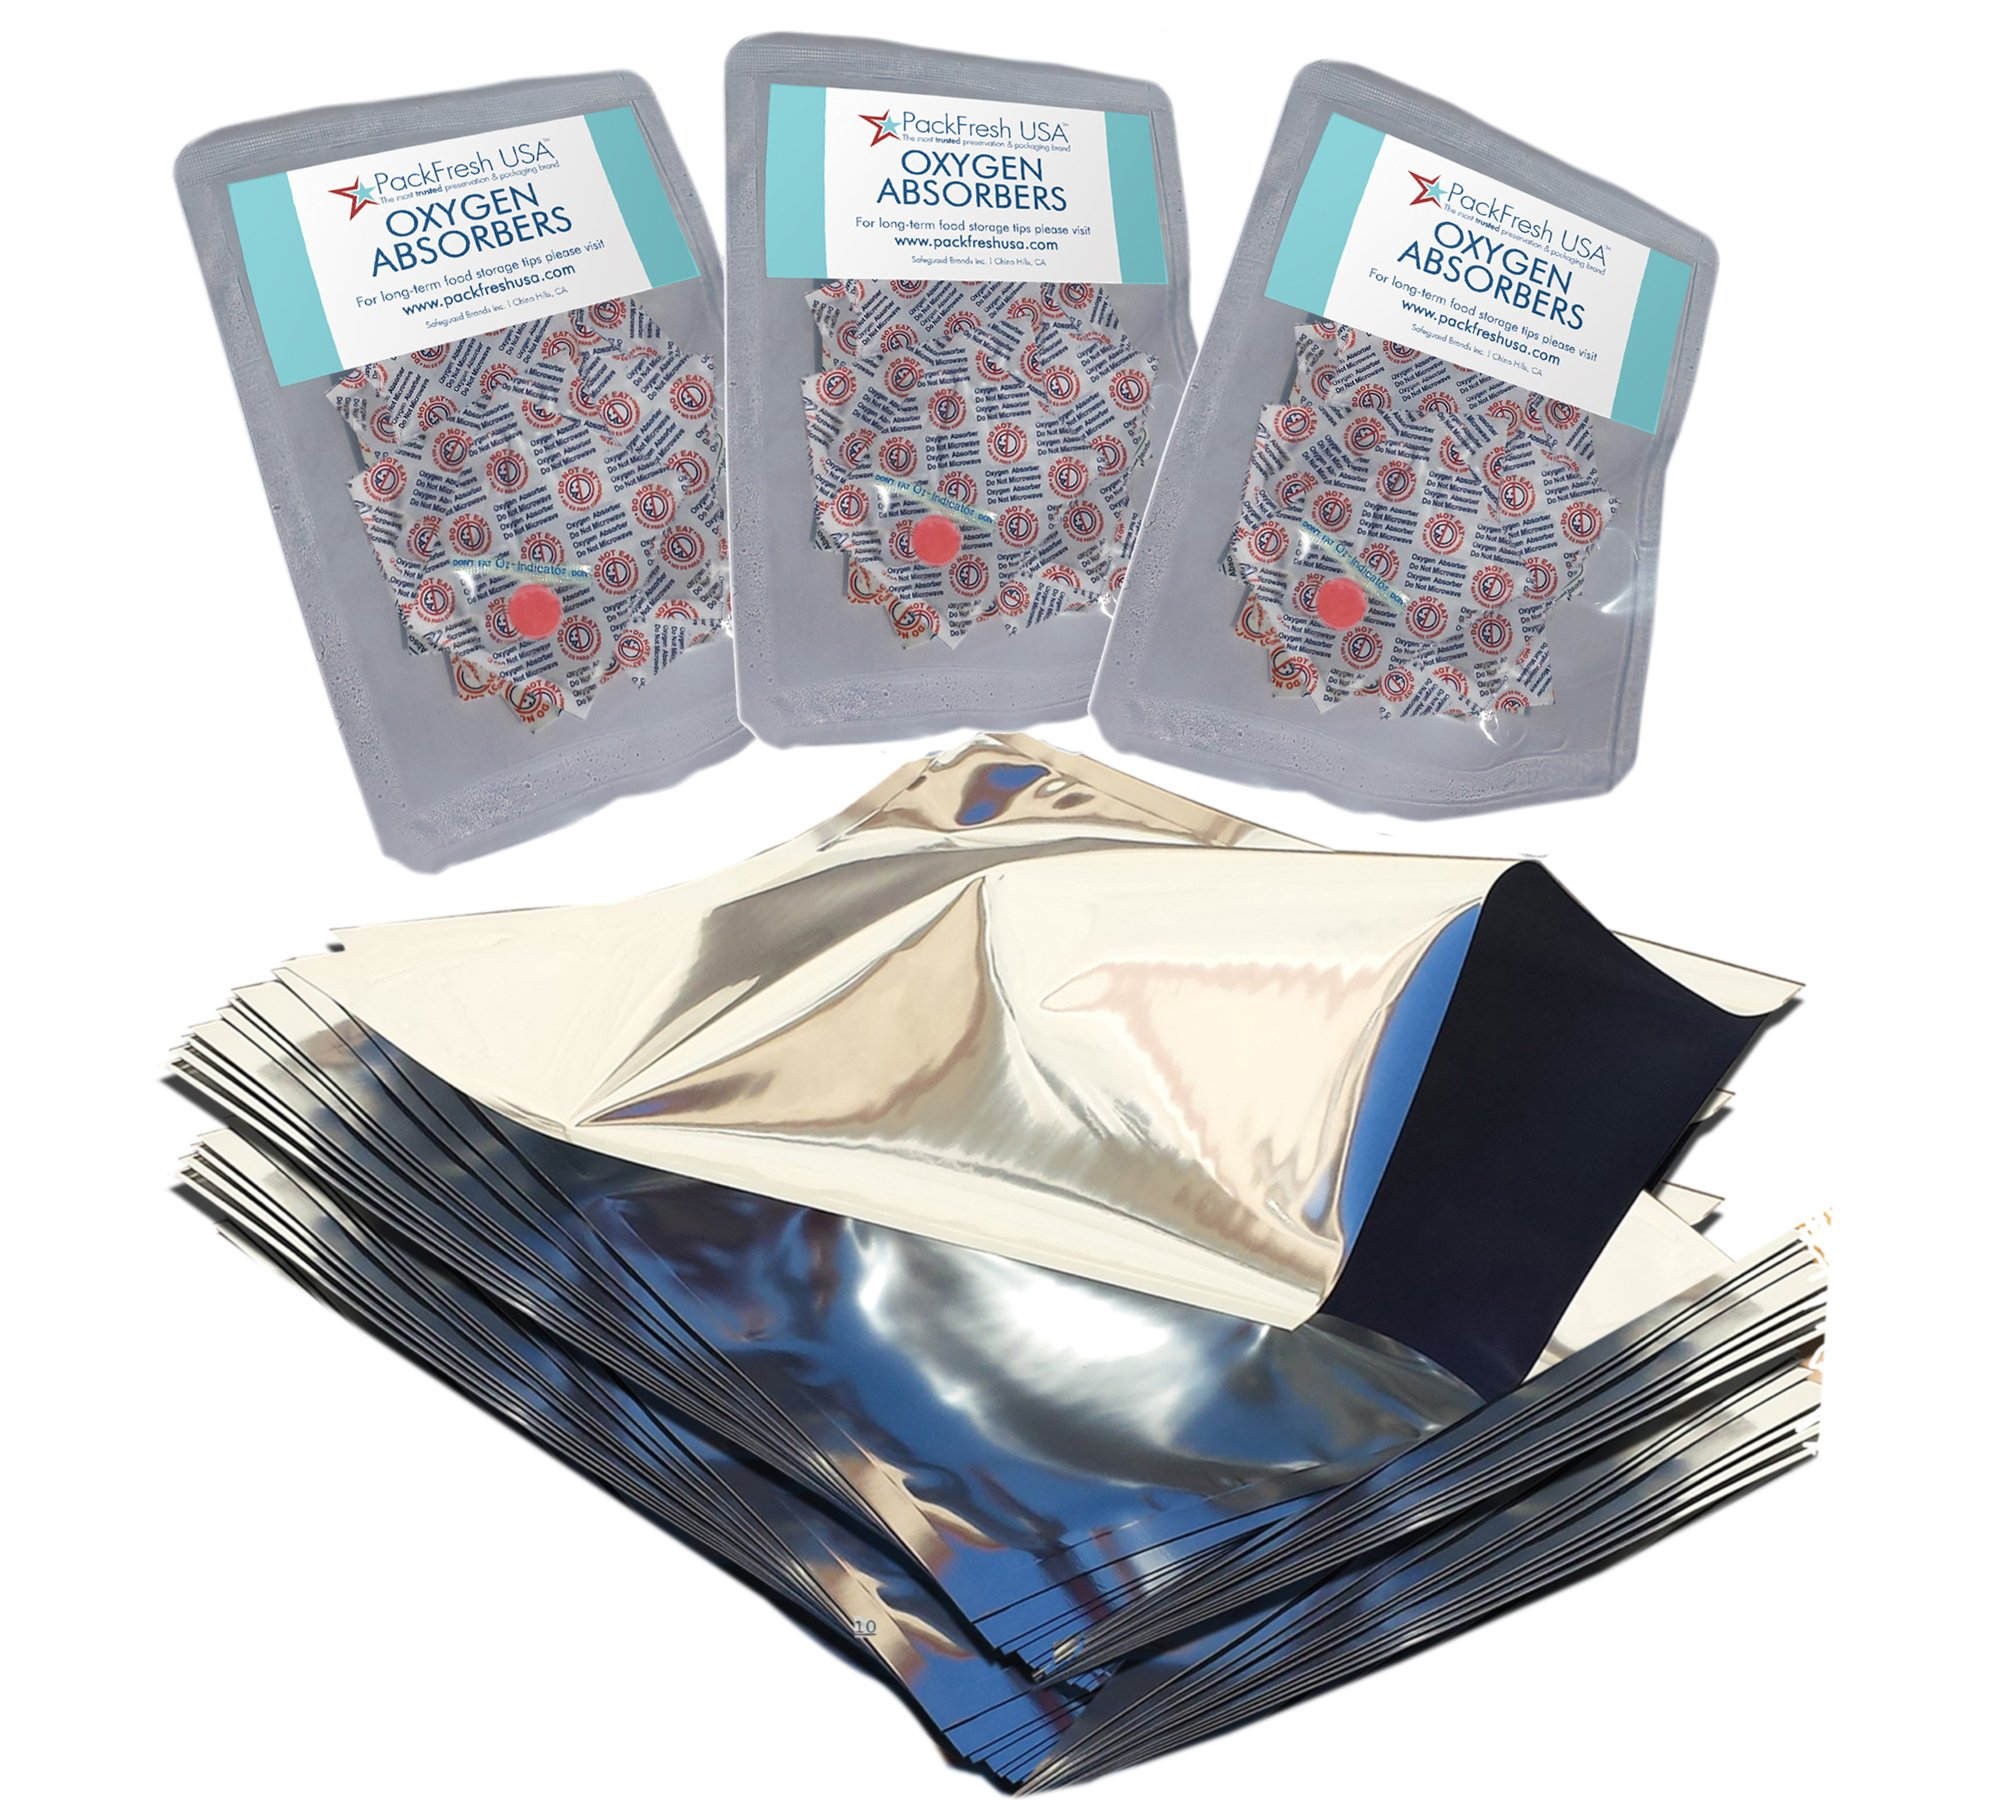 One Quart Genuine Mylar Bags (Made in USA) with 300cc Oxygen Absorbers (25)